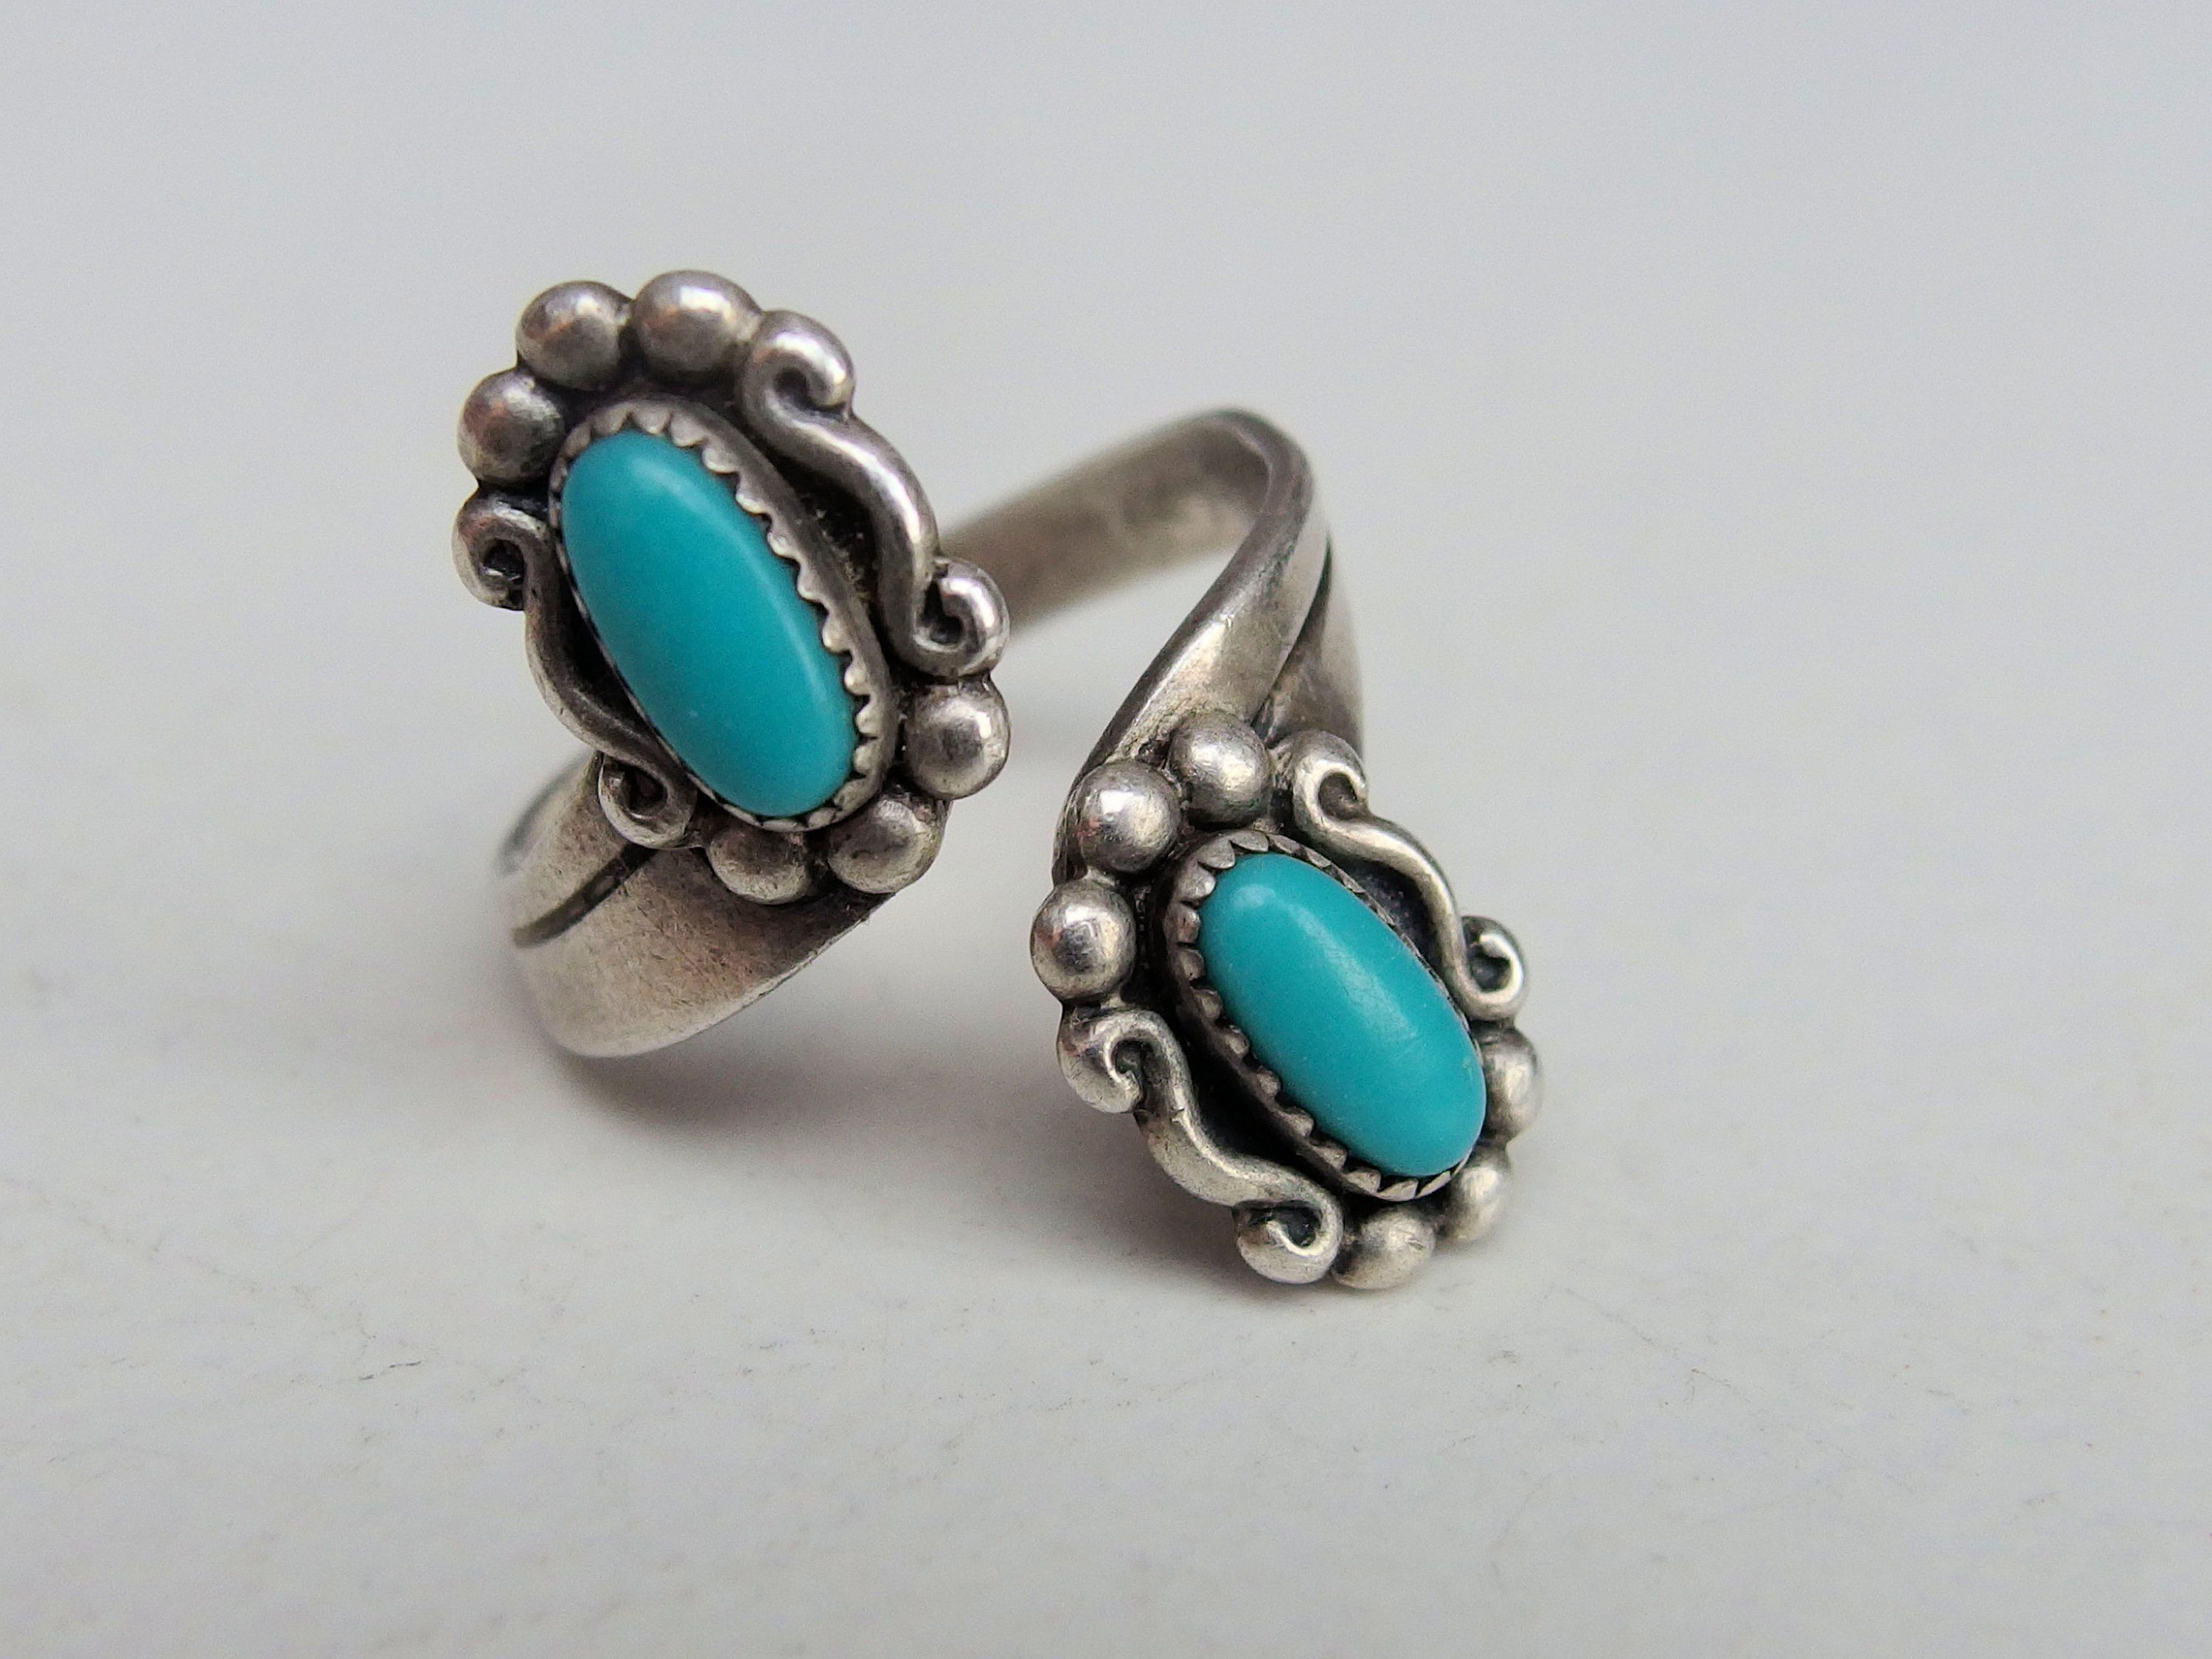 jewelry supplies silversmith jewelry cabochons hand cut jewelers accessories handmade Sterling opal cabochon; gemstones